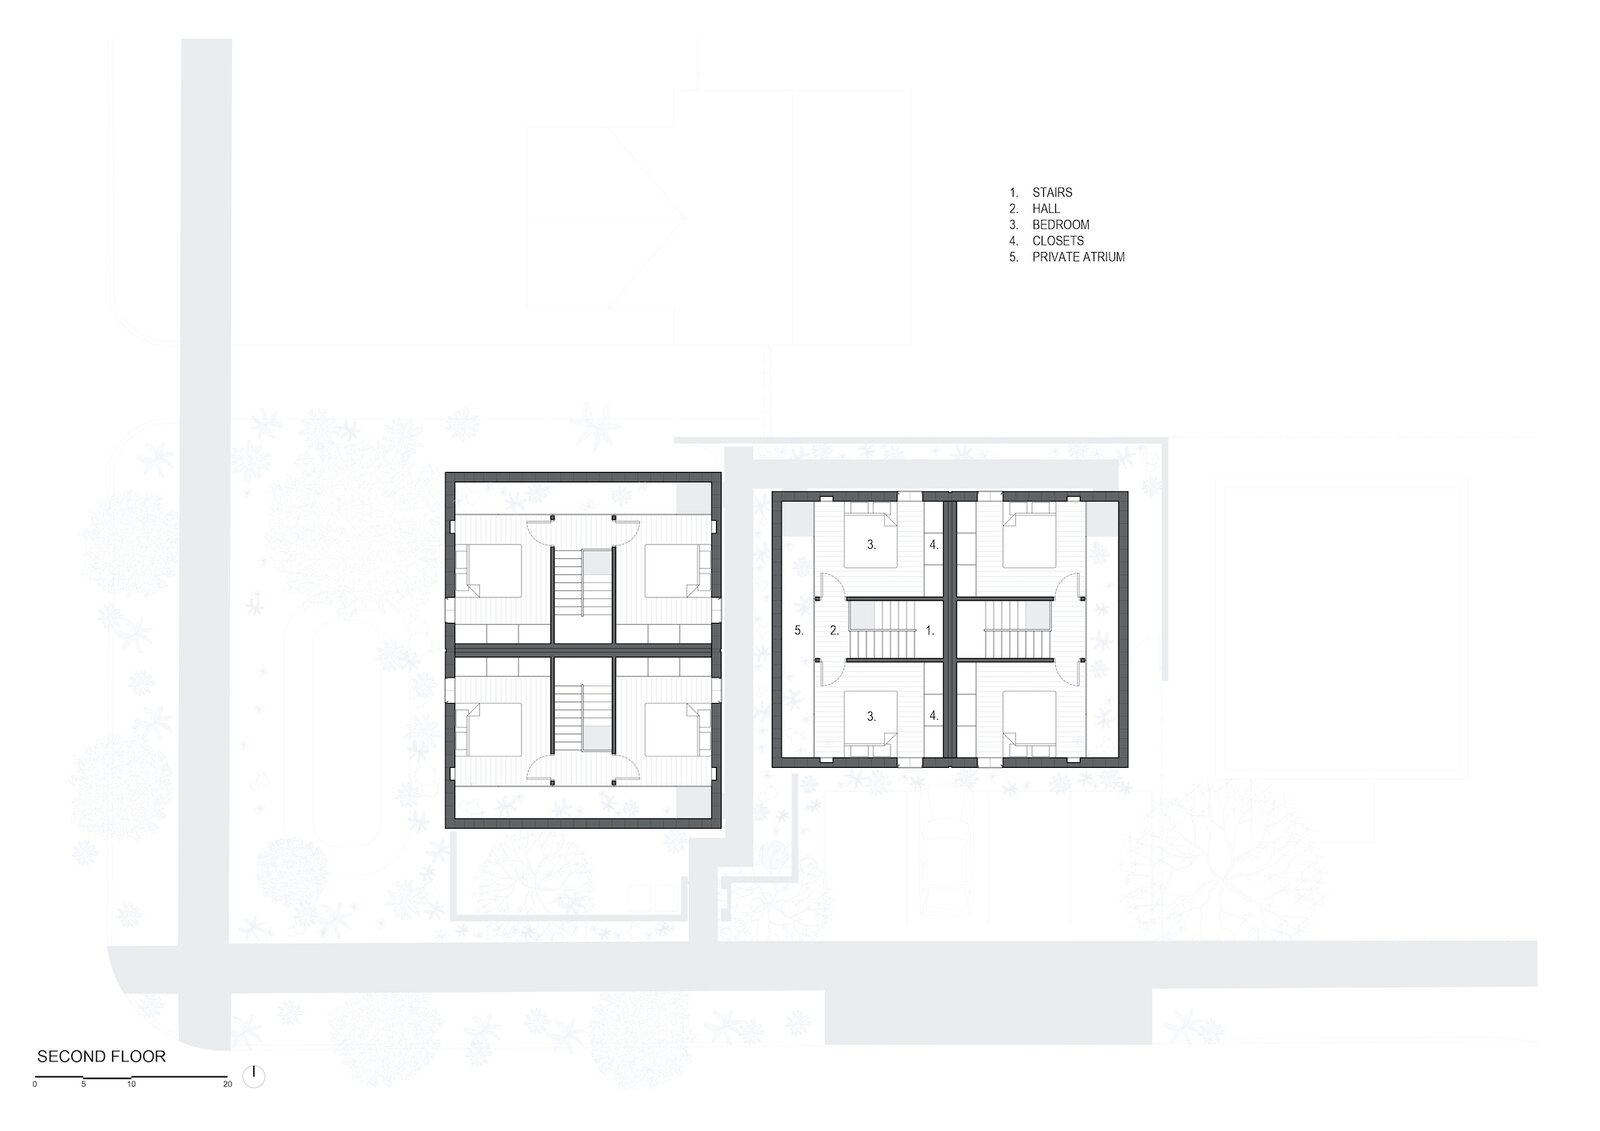 Second floor plan of White Stone Flats by Benjamin Hall Design.